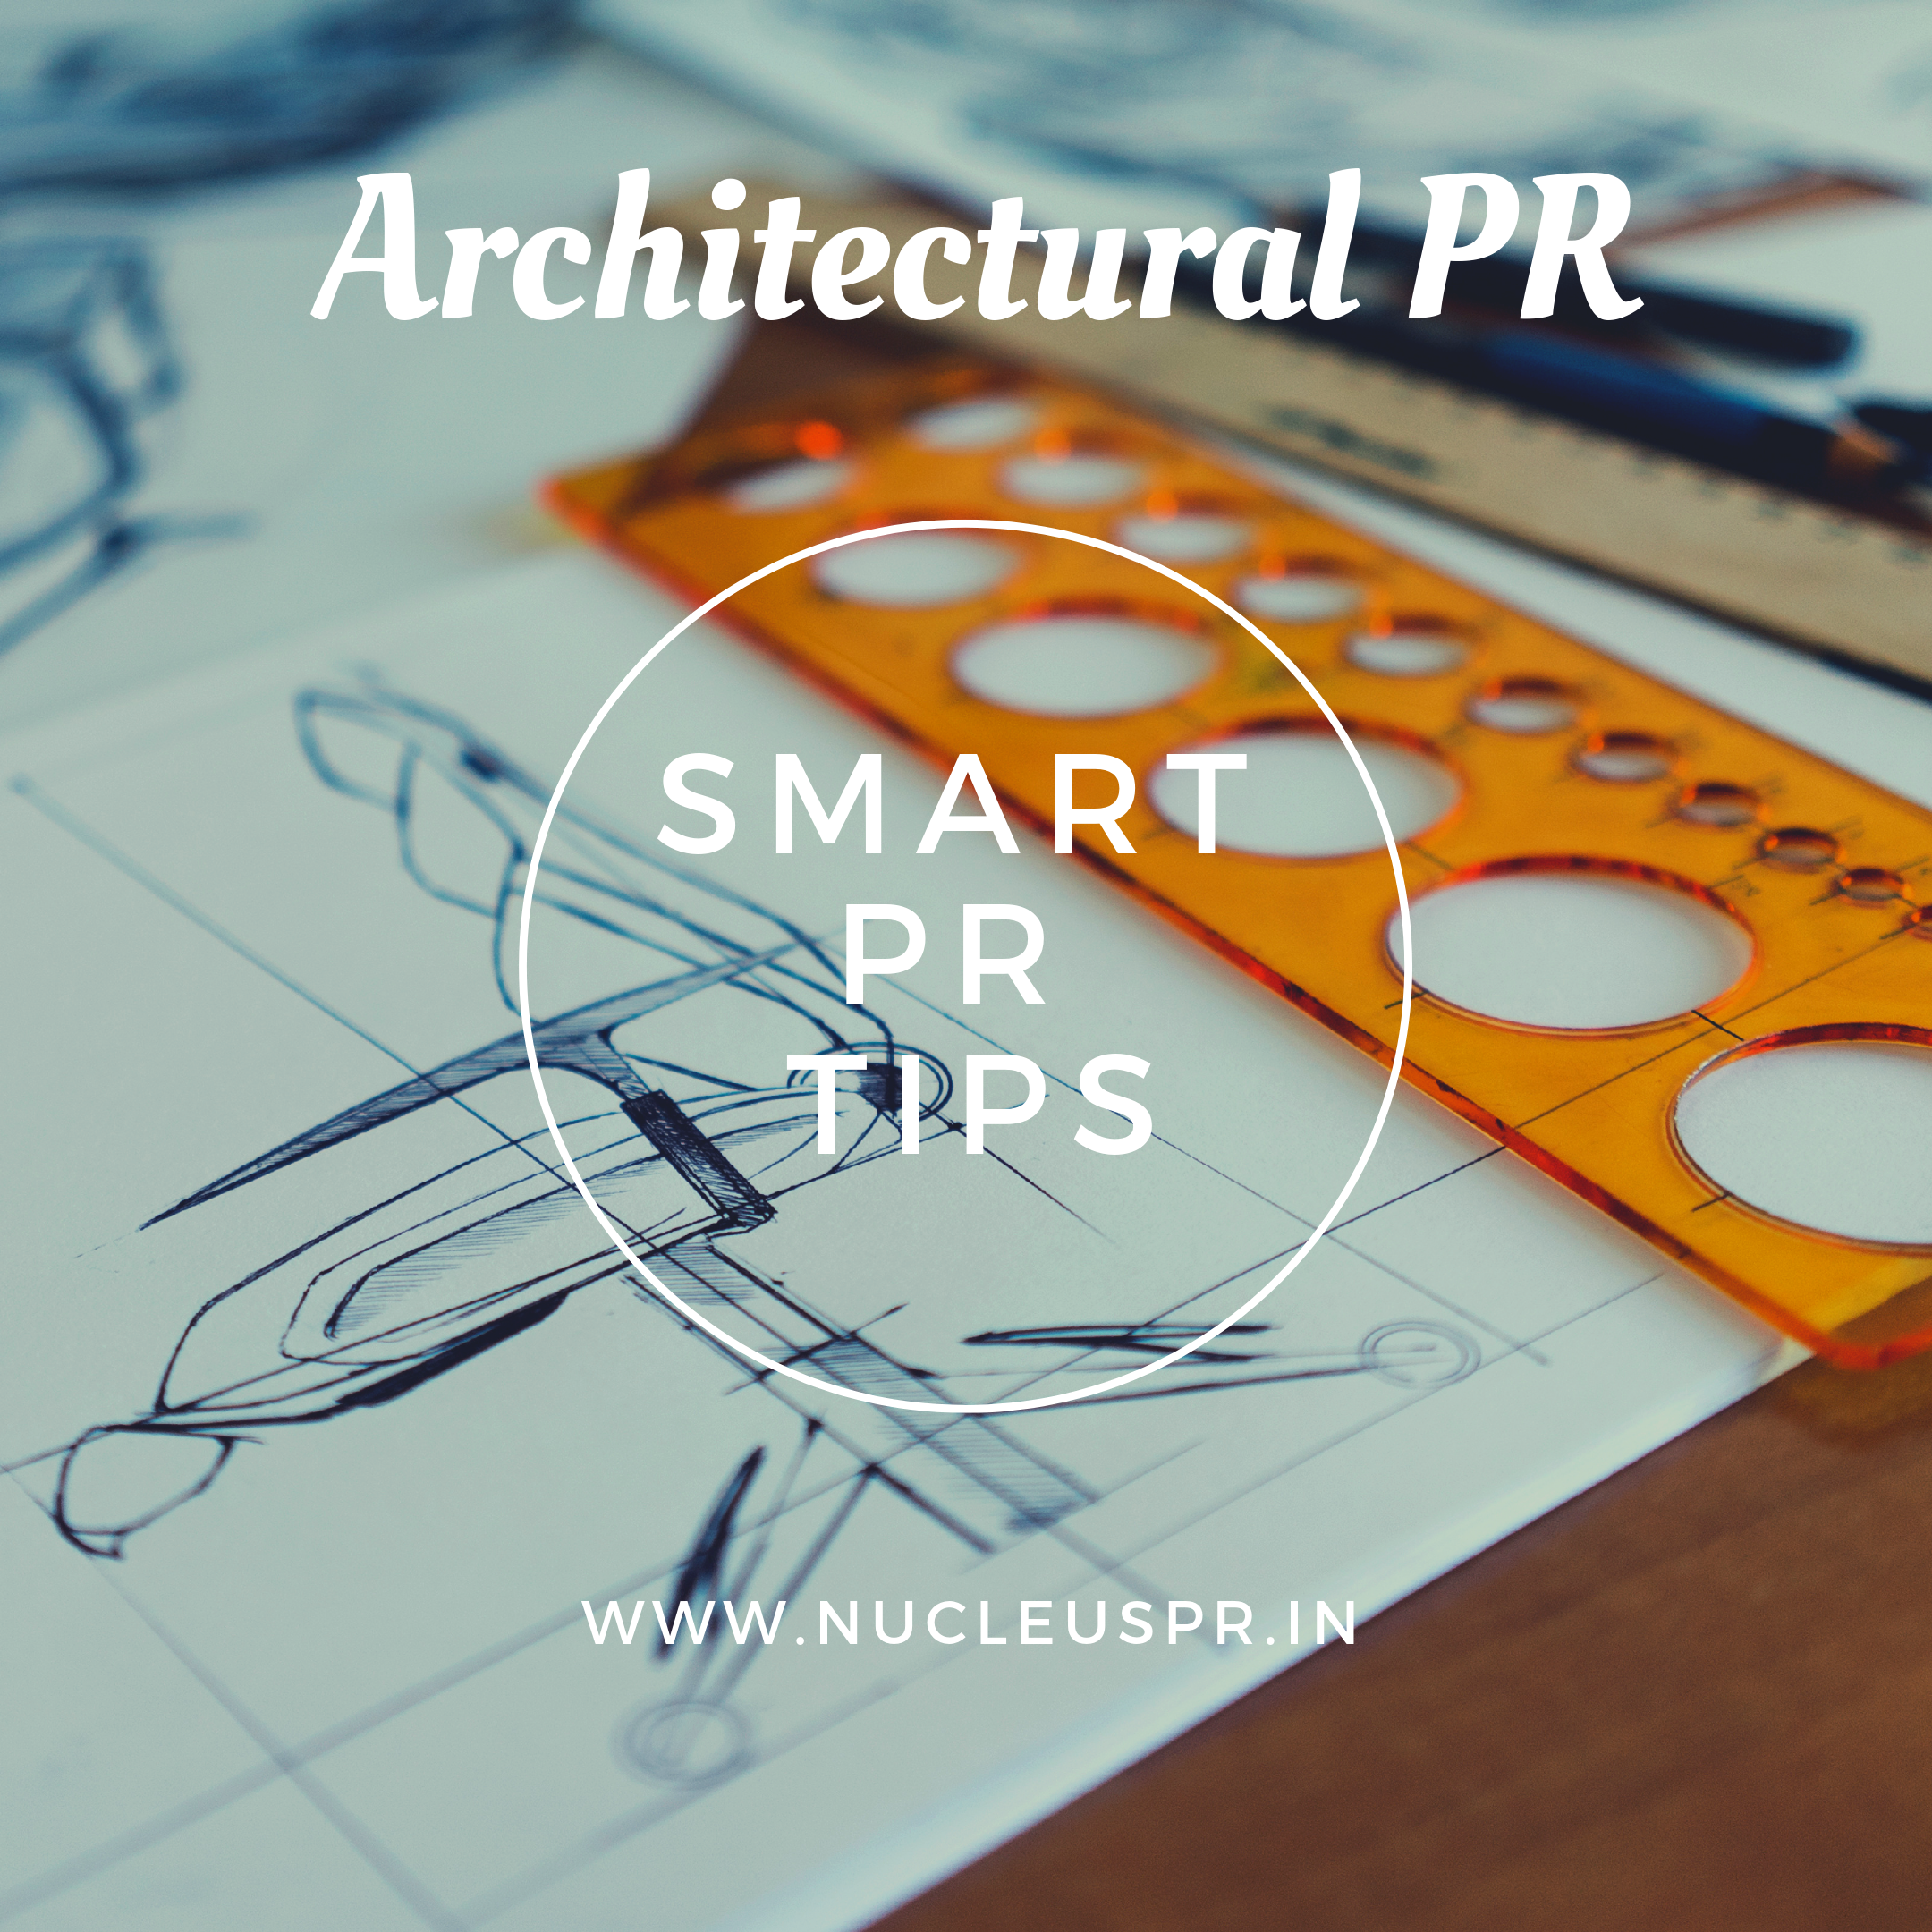 Why does an Architect need PR?